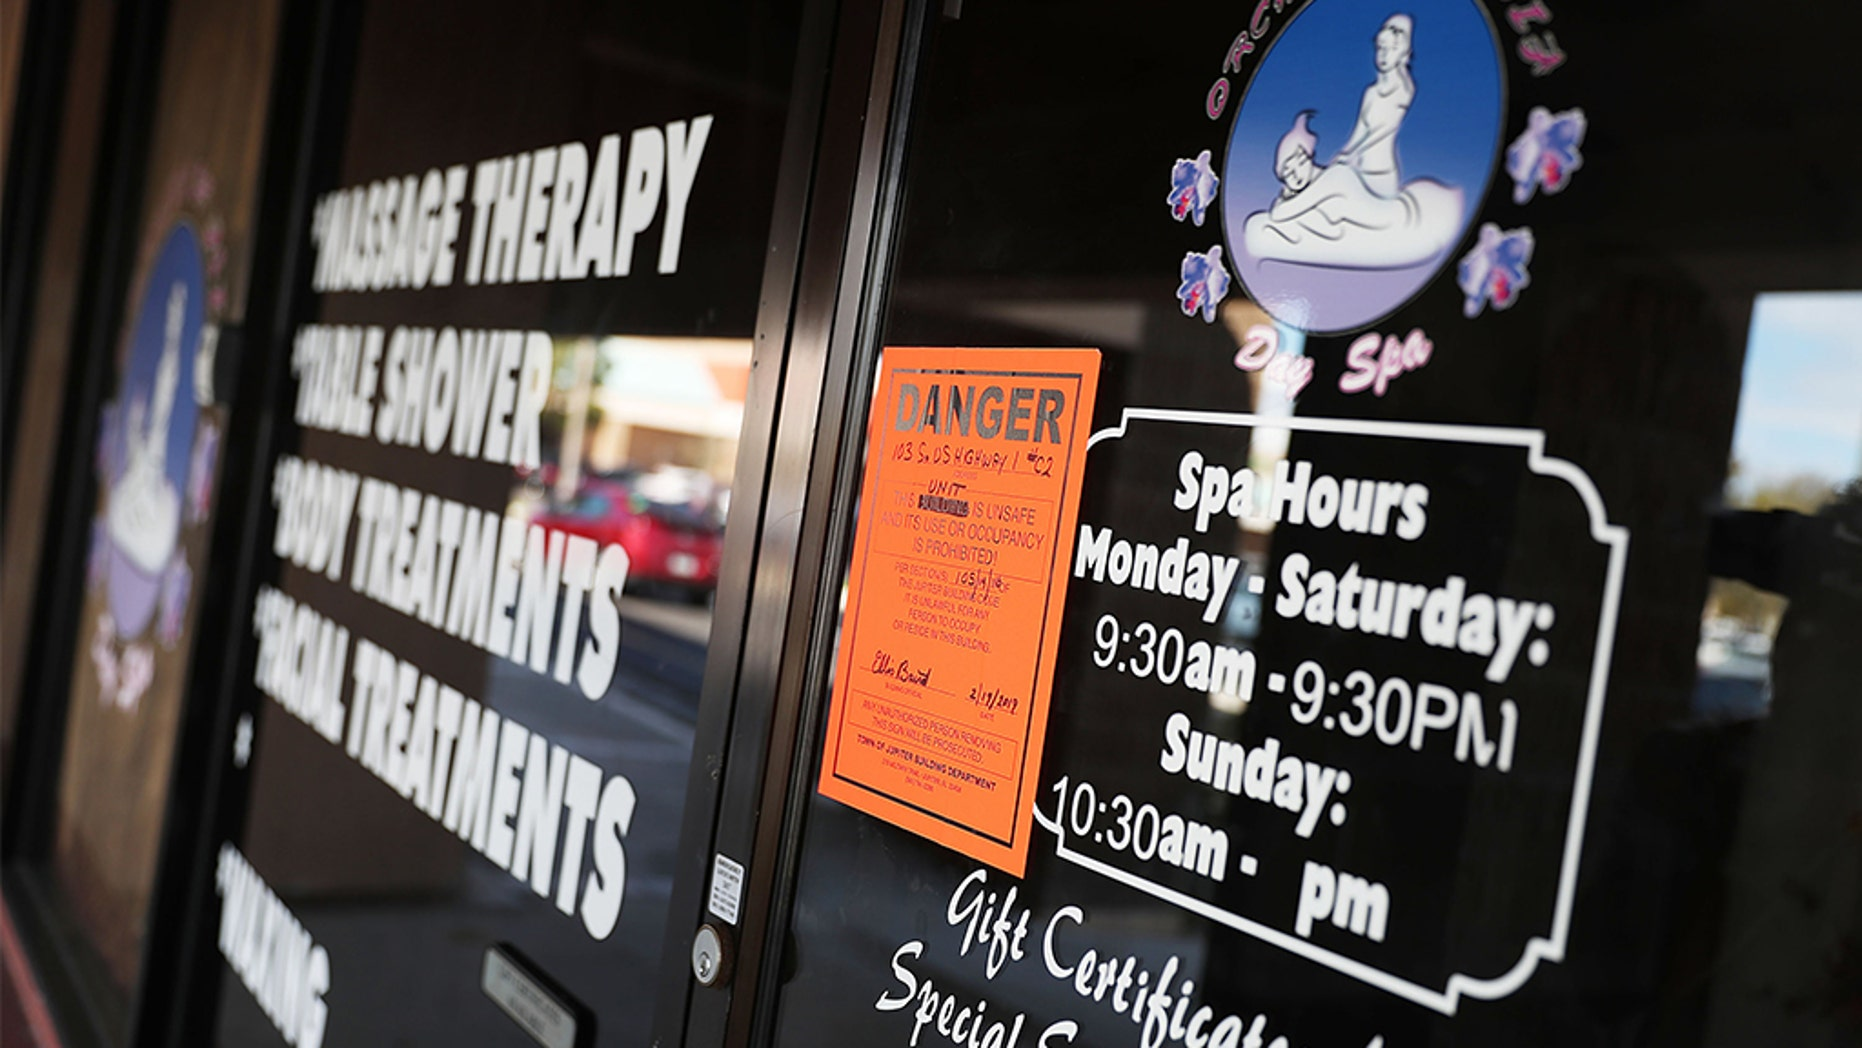 Kraft case casts uncomfortable spotlight on depths of massage parlor sex trafficking in US